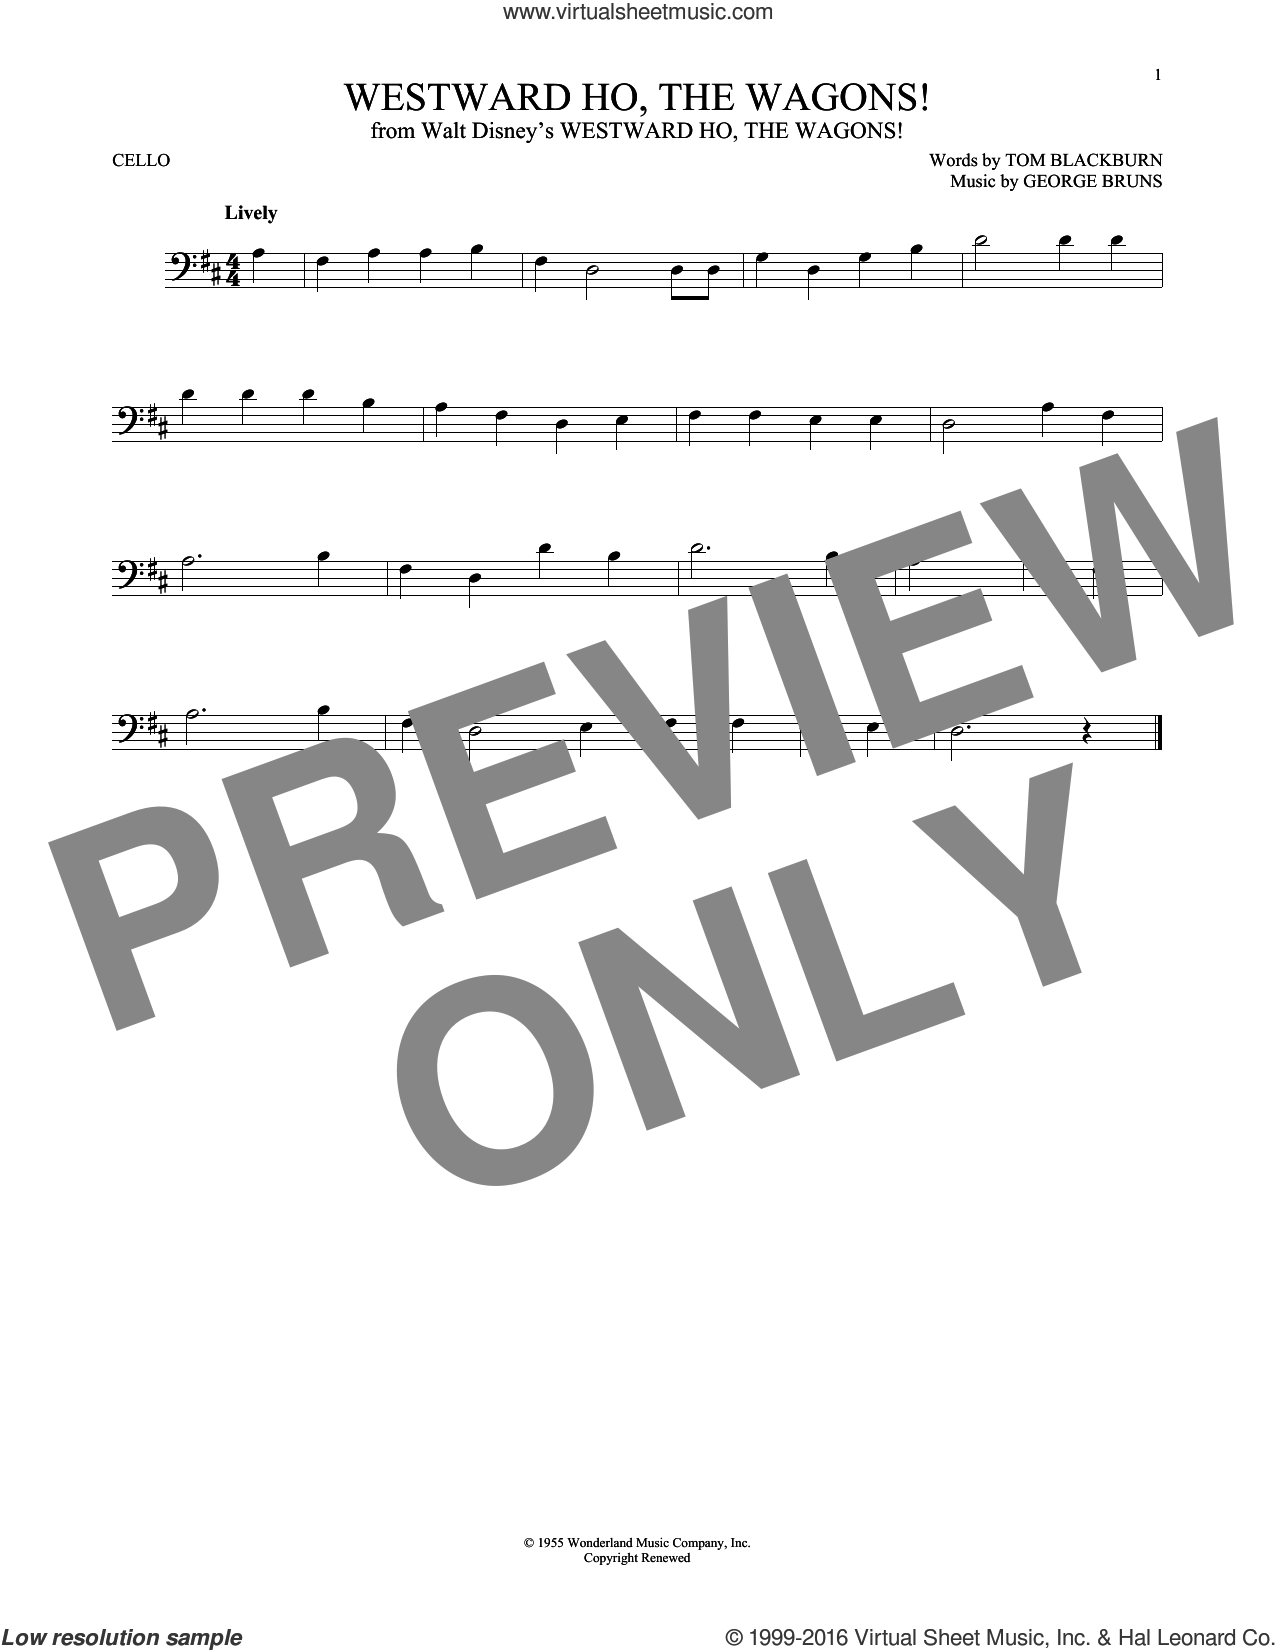 Westward Ho, The Wagons! sheet music for cello solo by George Bruns and Tom Blackburn, intermediate skill level